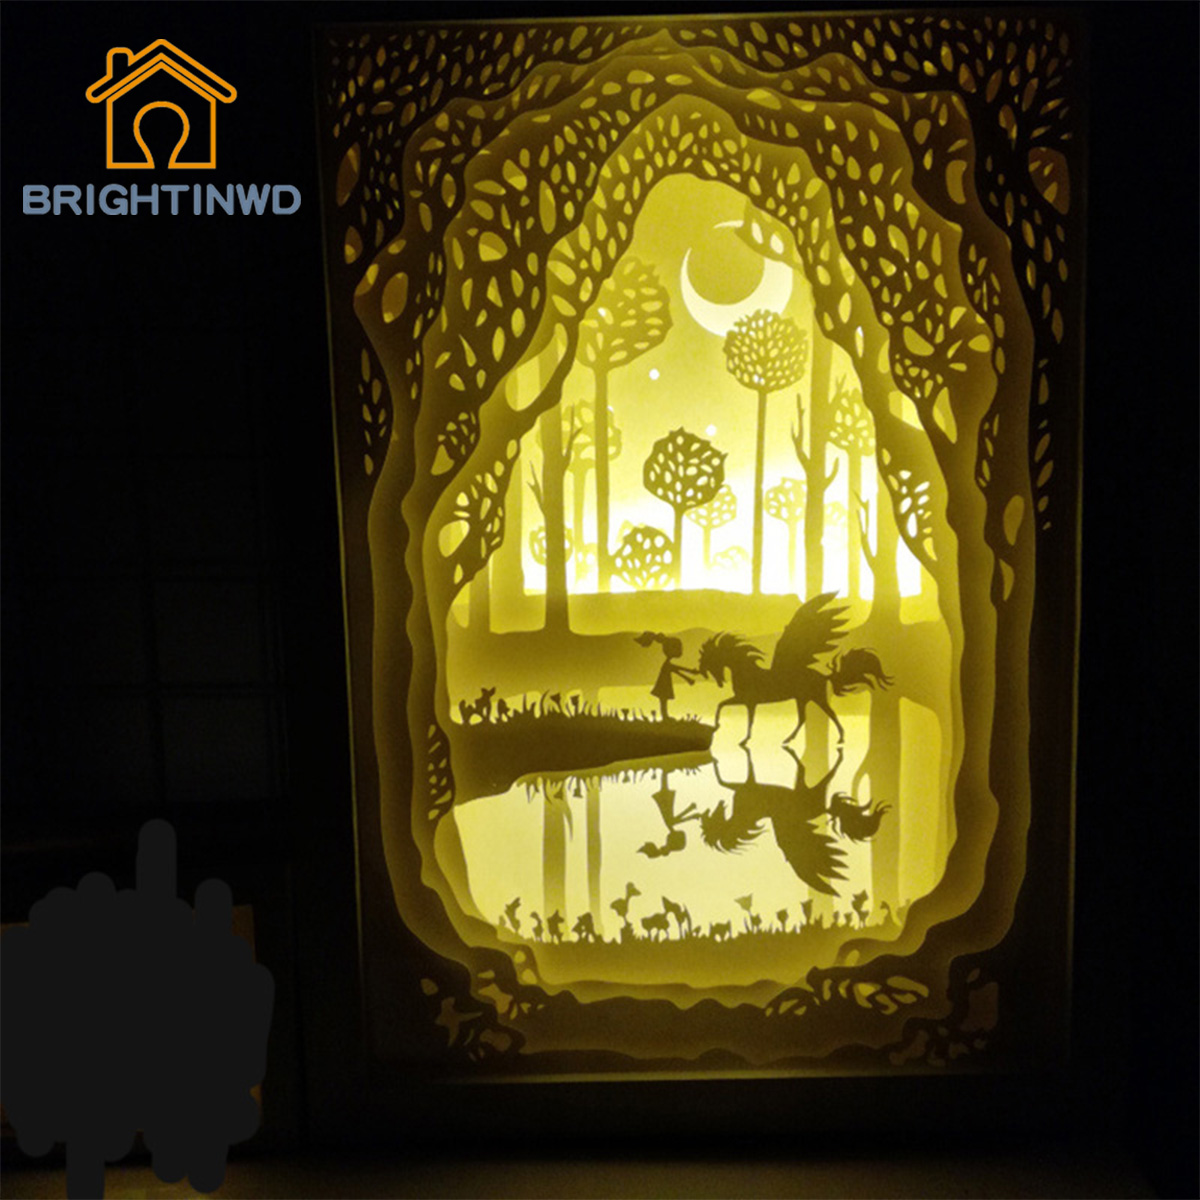 цены BRIGHTINWD LED Light And Shadow Paper Lamp Meet Innocence Night Light Personalized Gifts